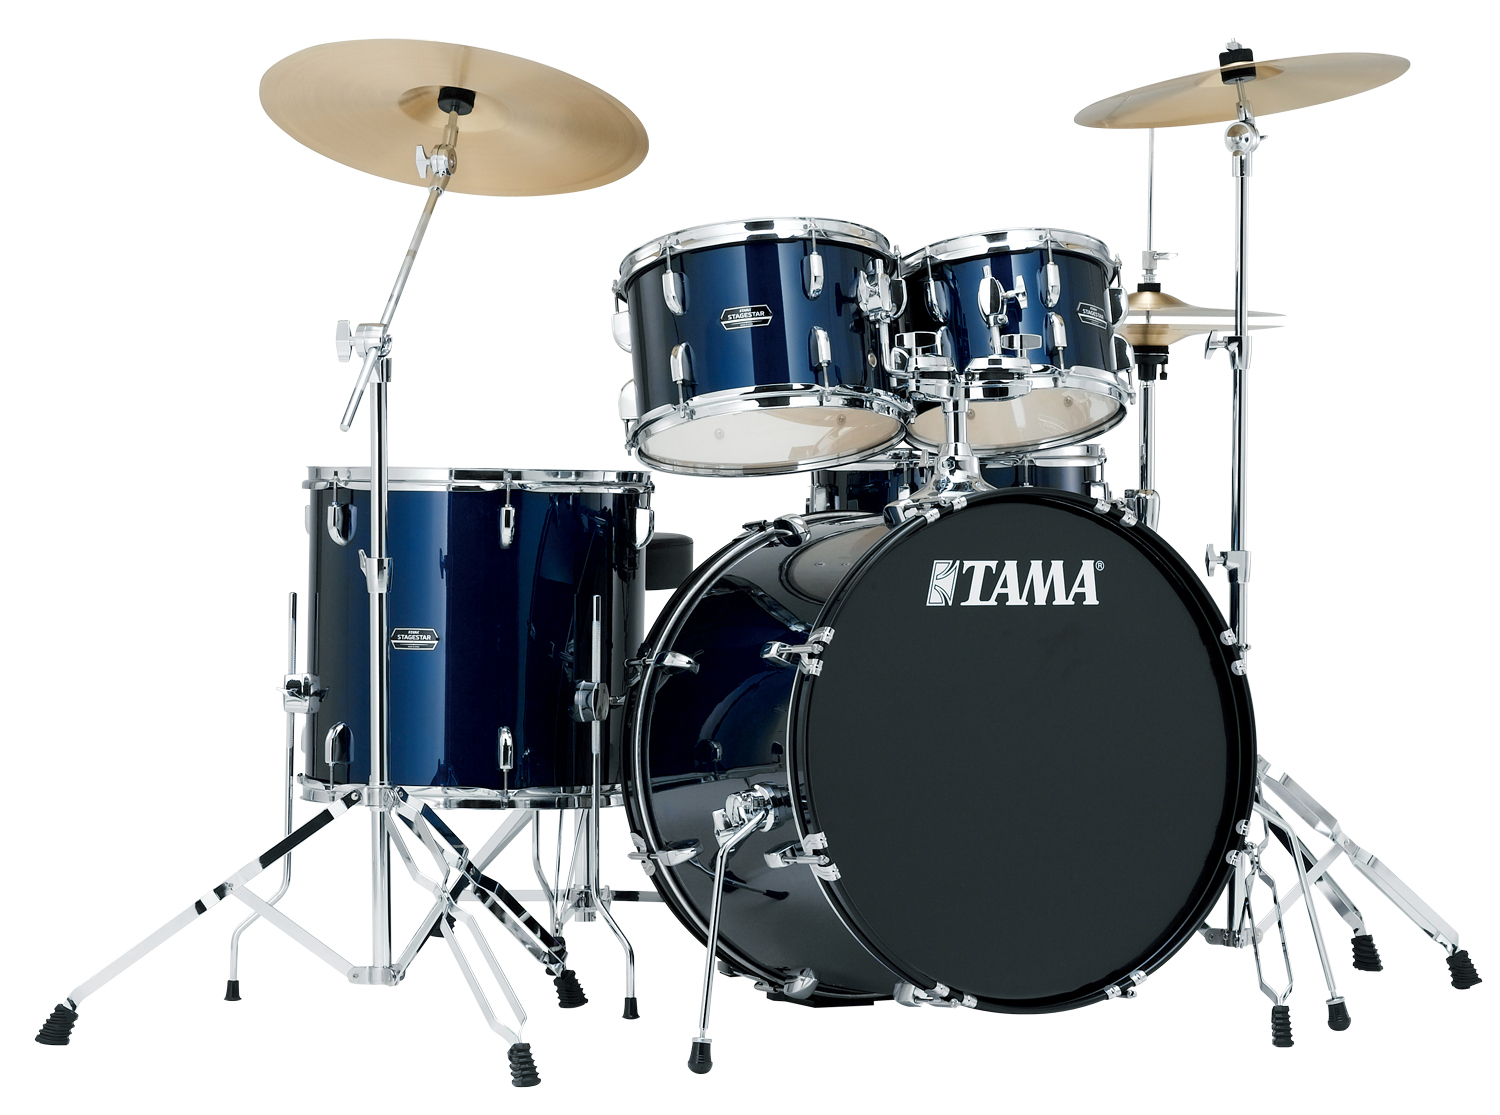 Tama Stagestar SG52KH5 5-Piece Acoustic Drum Kit with 22-Inch Bass Drum